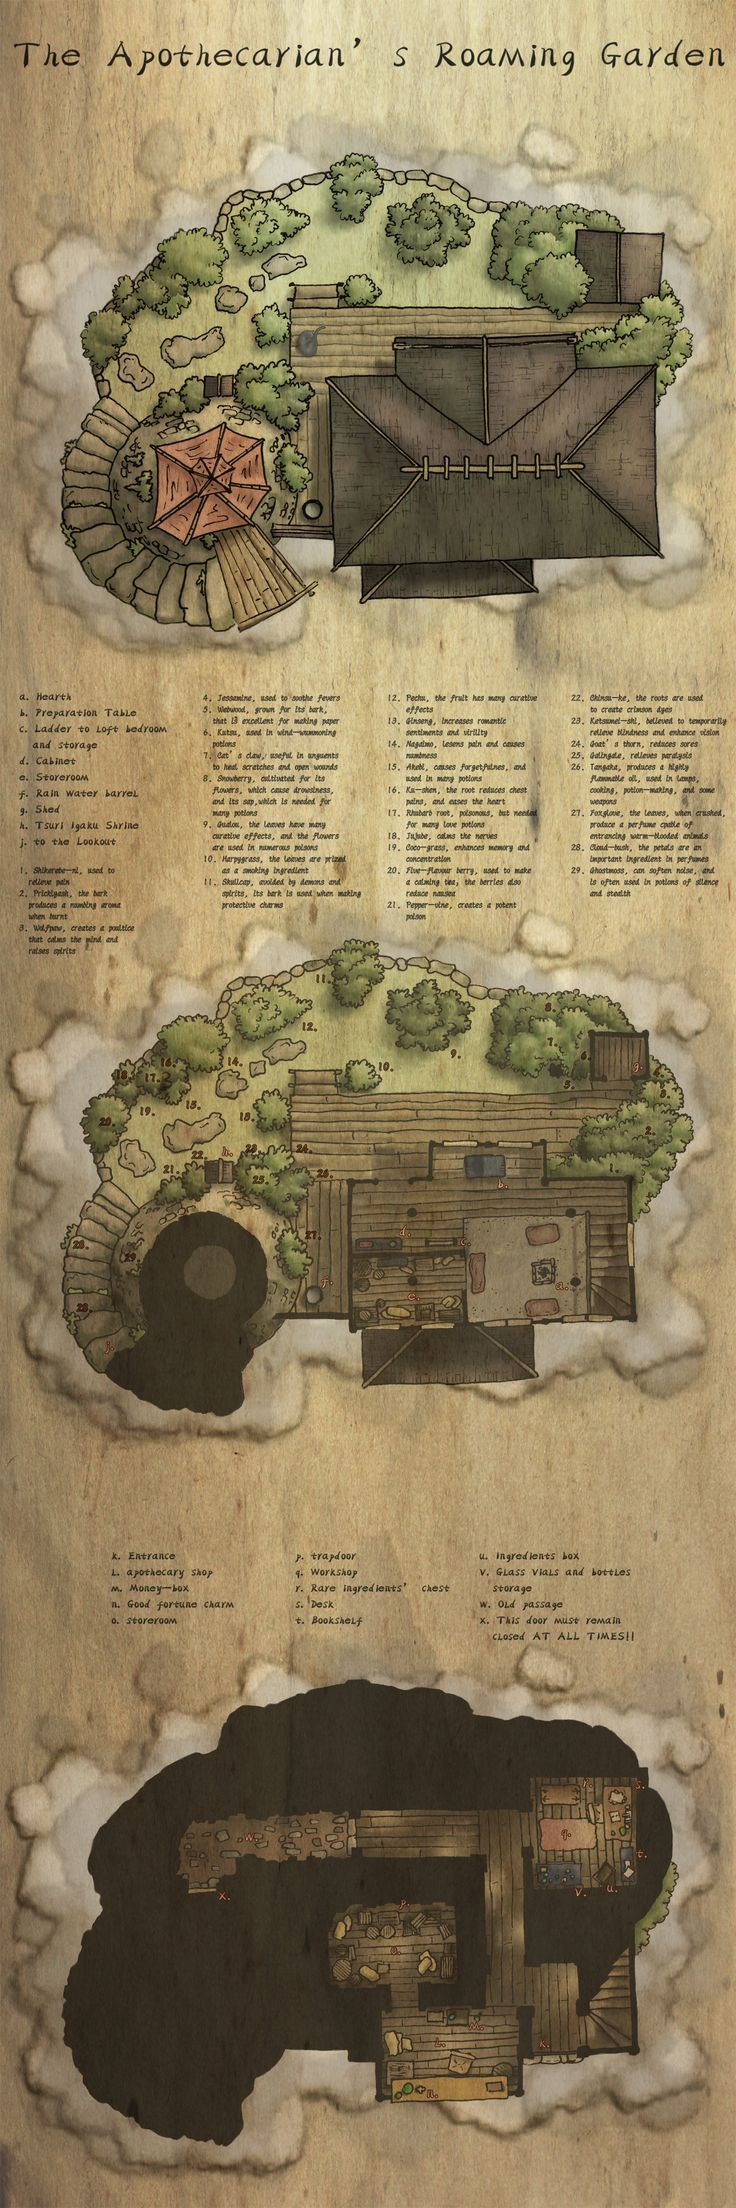 The Apothecarian's Roaming Garden (v. 01): this map was my (winning) entry to the Oct./Nov. 2014 Lite Challenge, Home Away From Home. I intend on returning to this map to make some additions and adjustments.